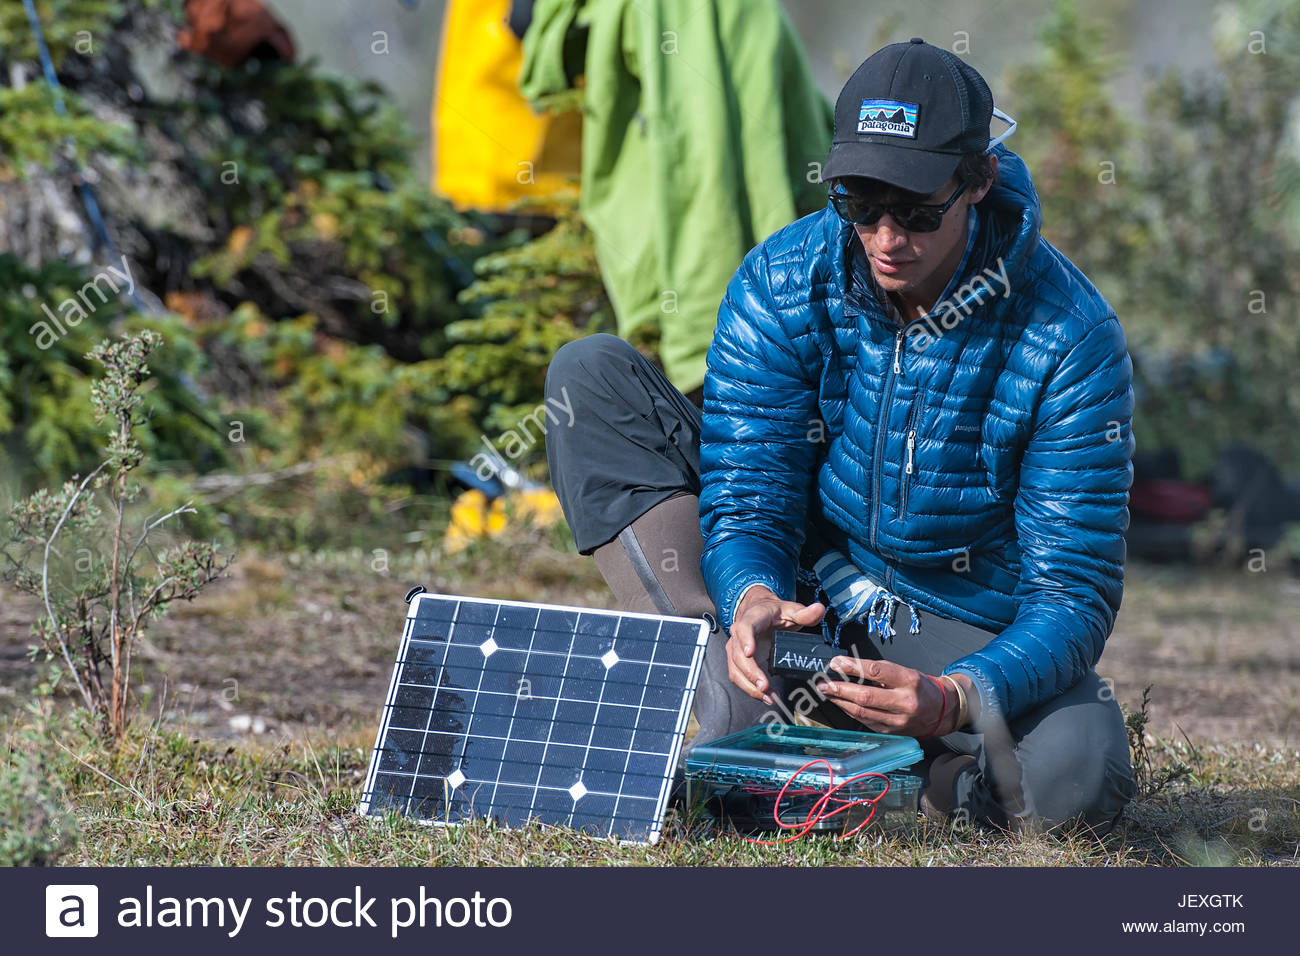 Videographer charging batteries using a solar charging system from our sponsors at Voltaic Systems. The solar charger - Stock Image